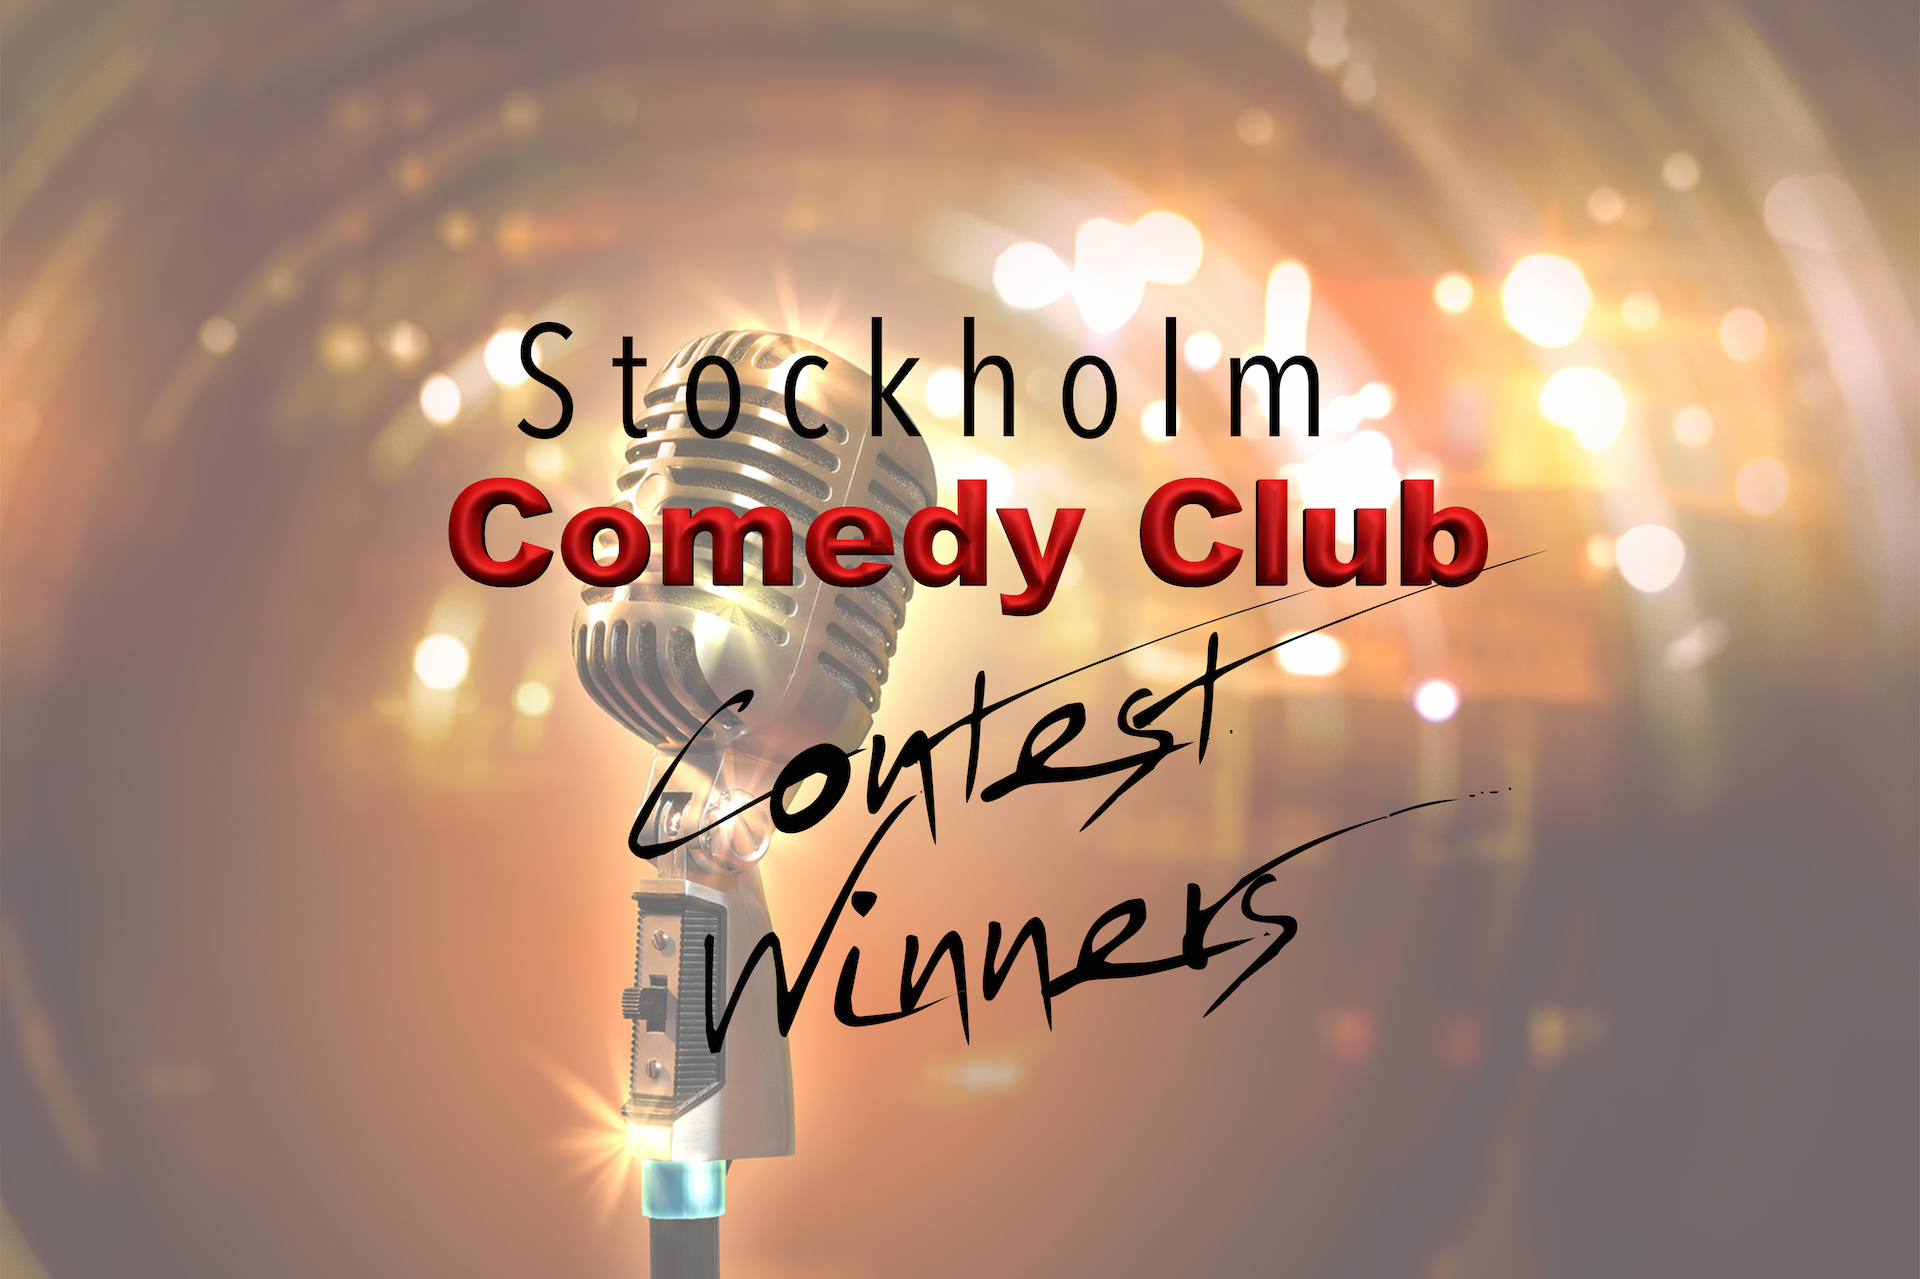 best of stockholm comedy club winners of stockholm comedy contest